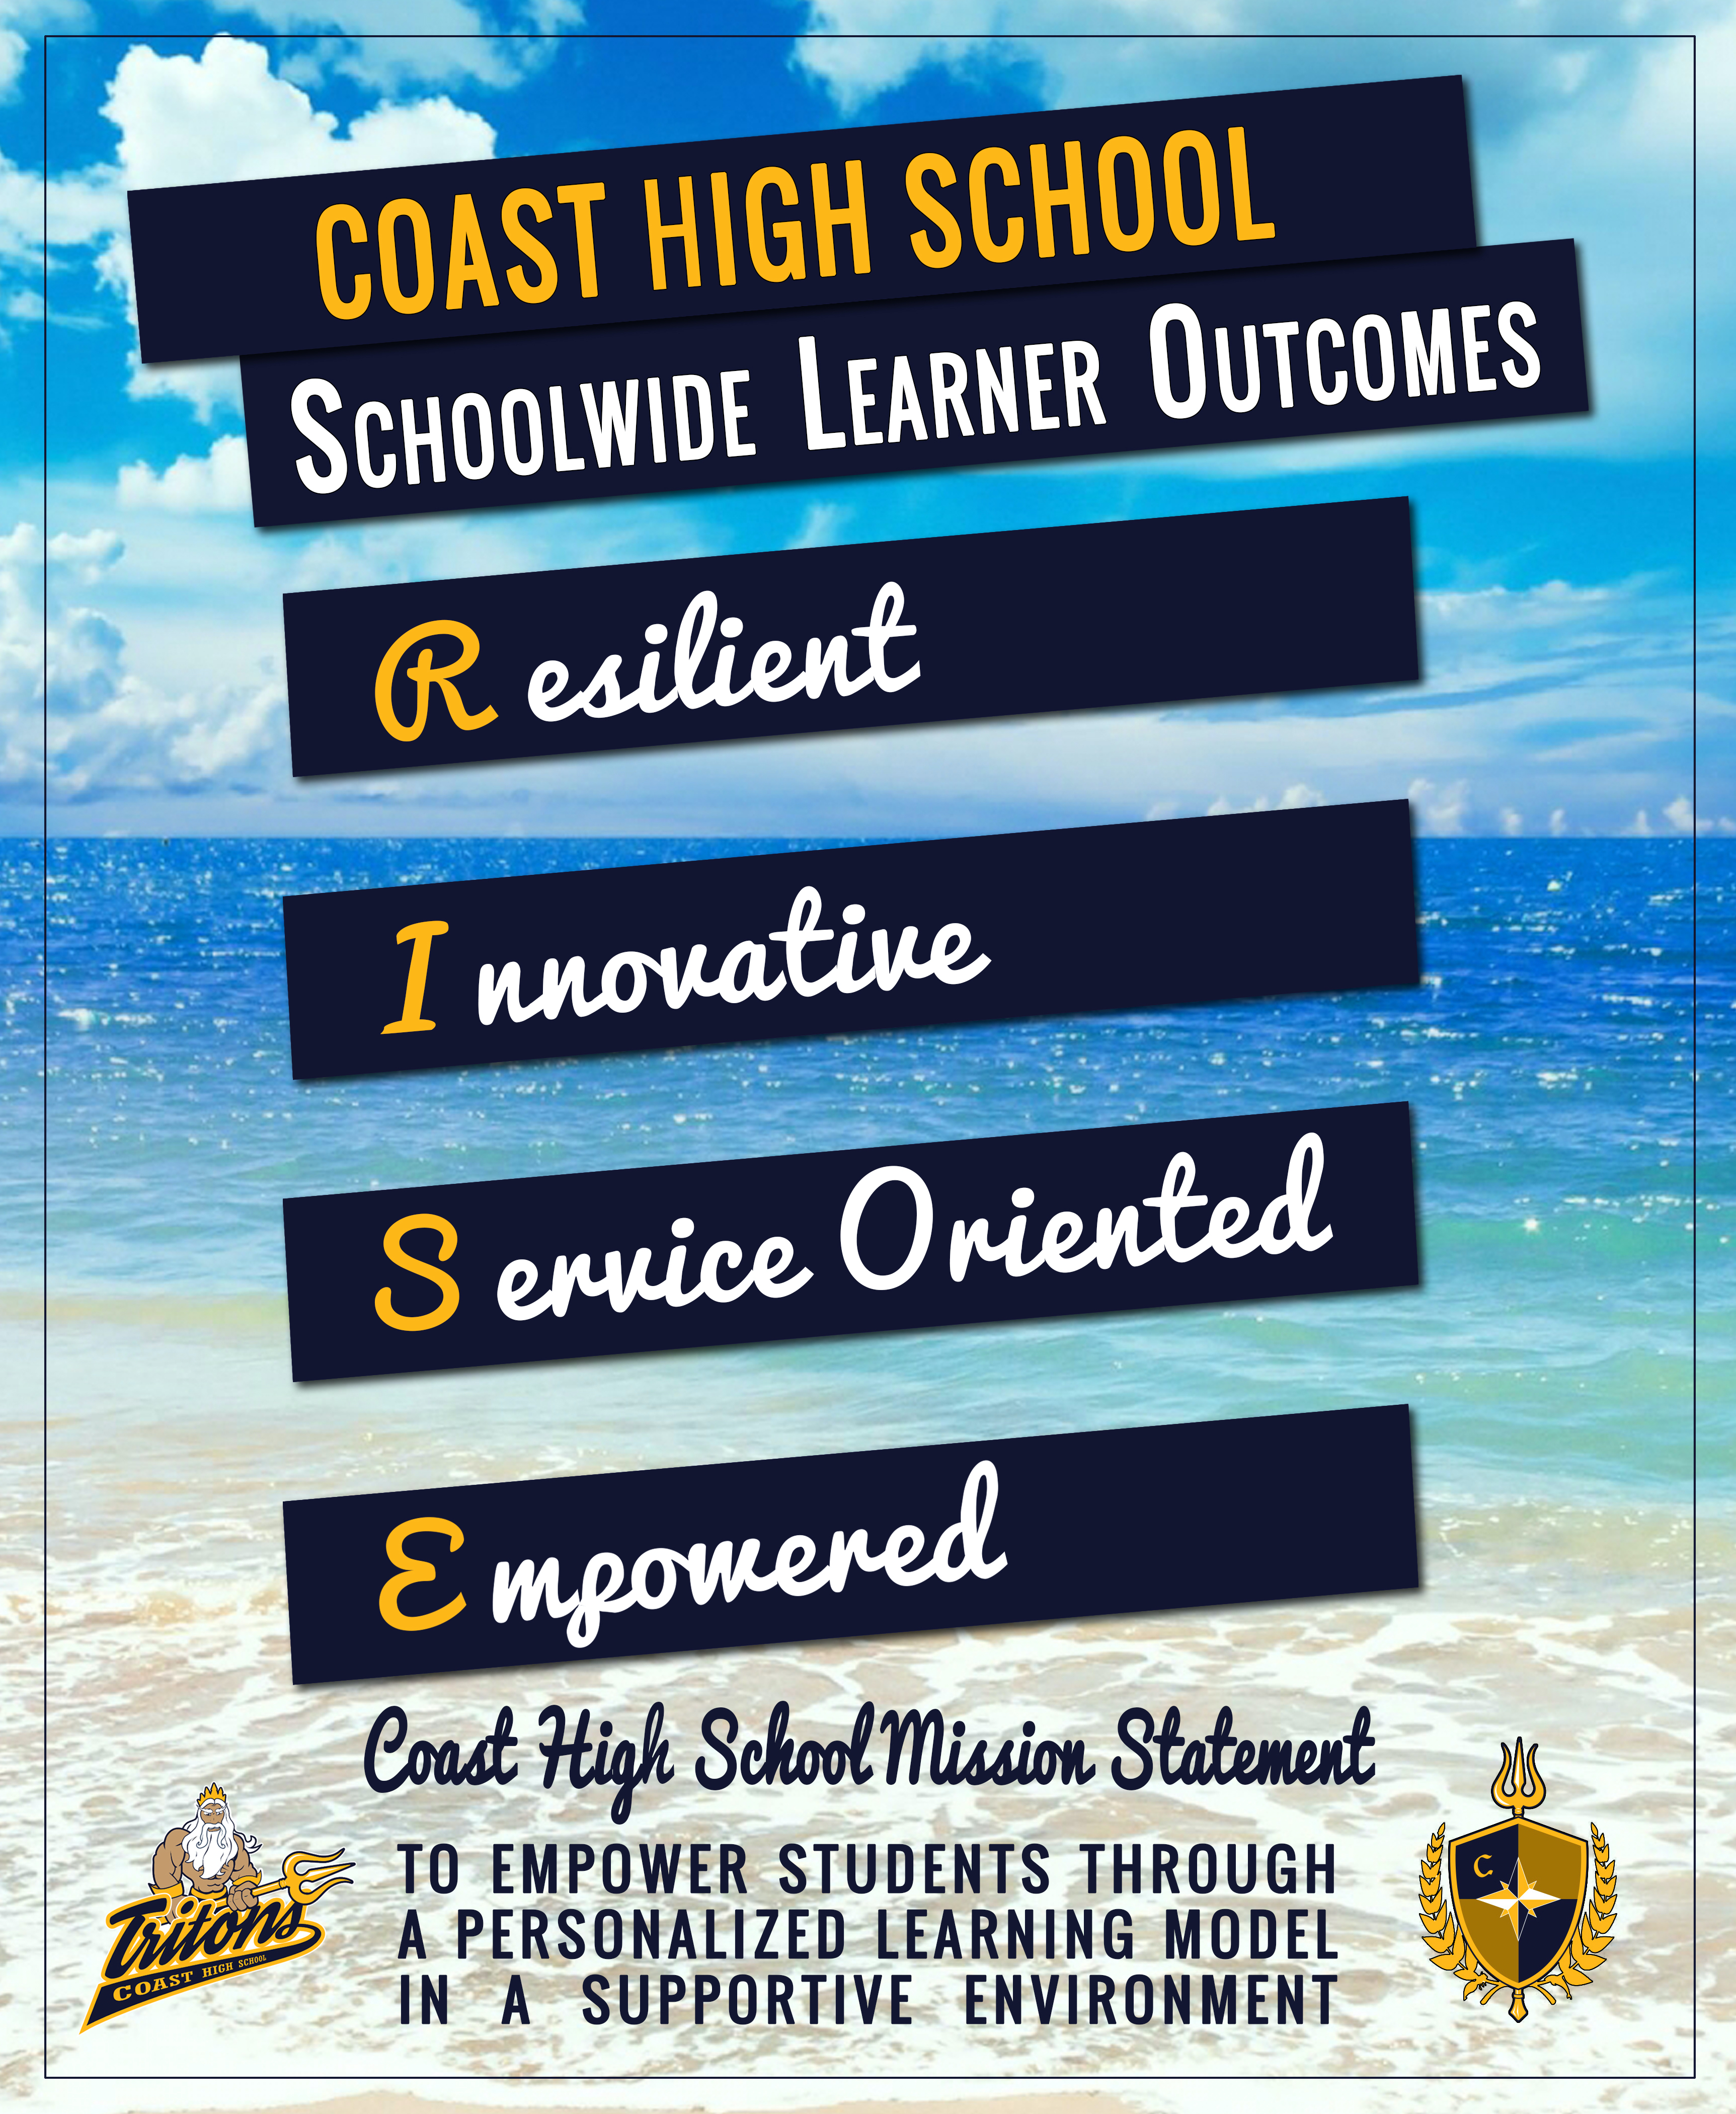 Schoolwide Learning Outcomes